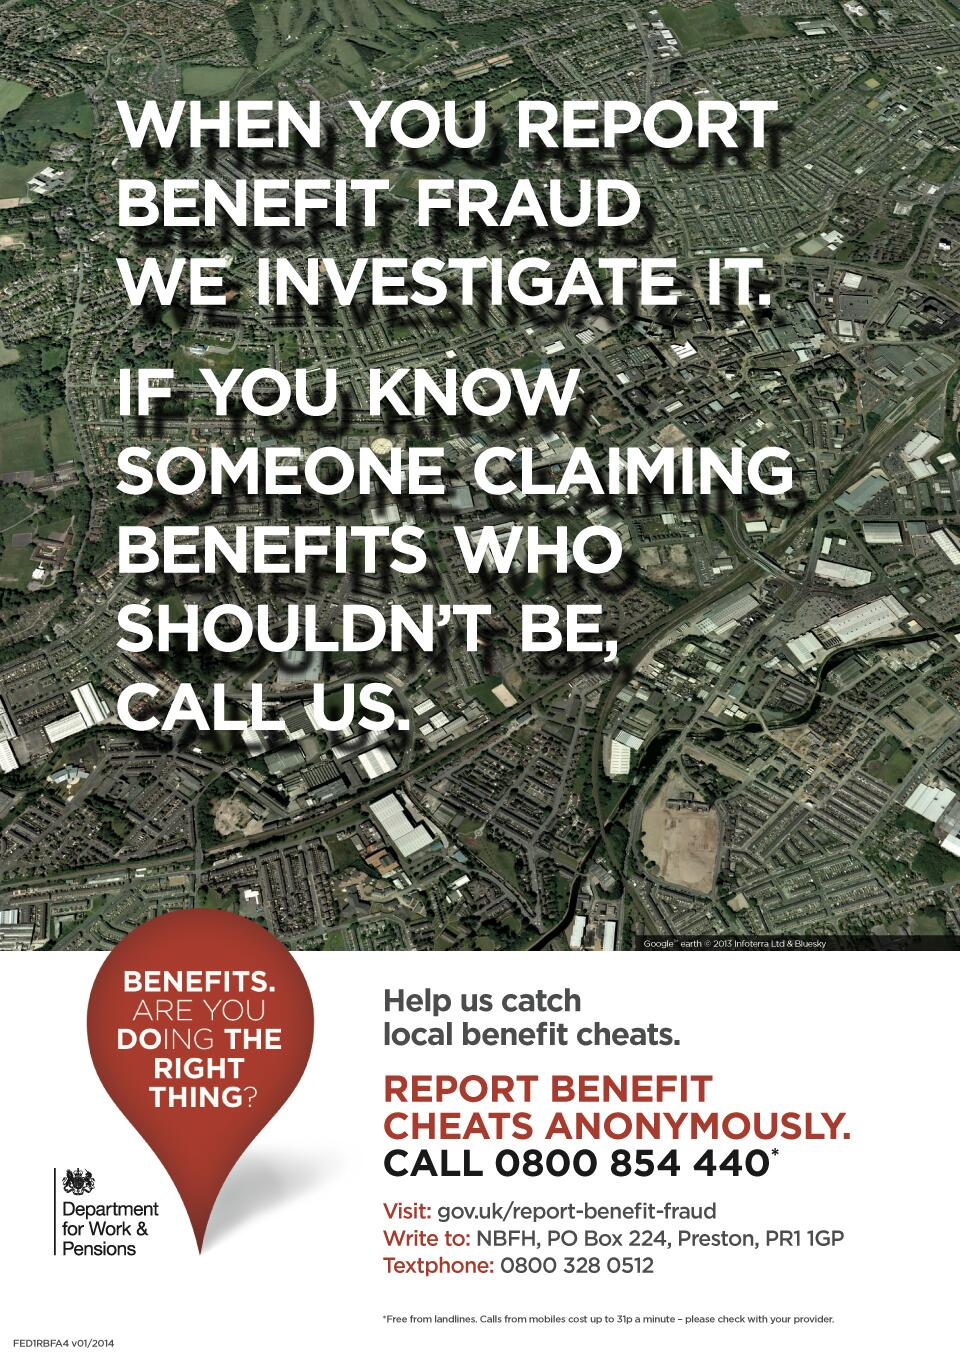 Dwp Press Office On Twitter Poster When You Report Benefit Fraud We Investigate It Report Benefits Cheats Anonymously Http T Co 42bvmvtfsa Http T Co Ortc2pxl8p